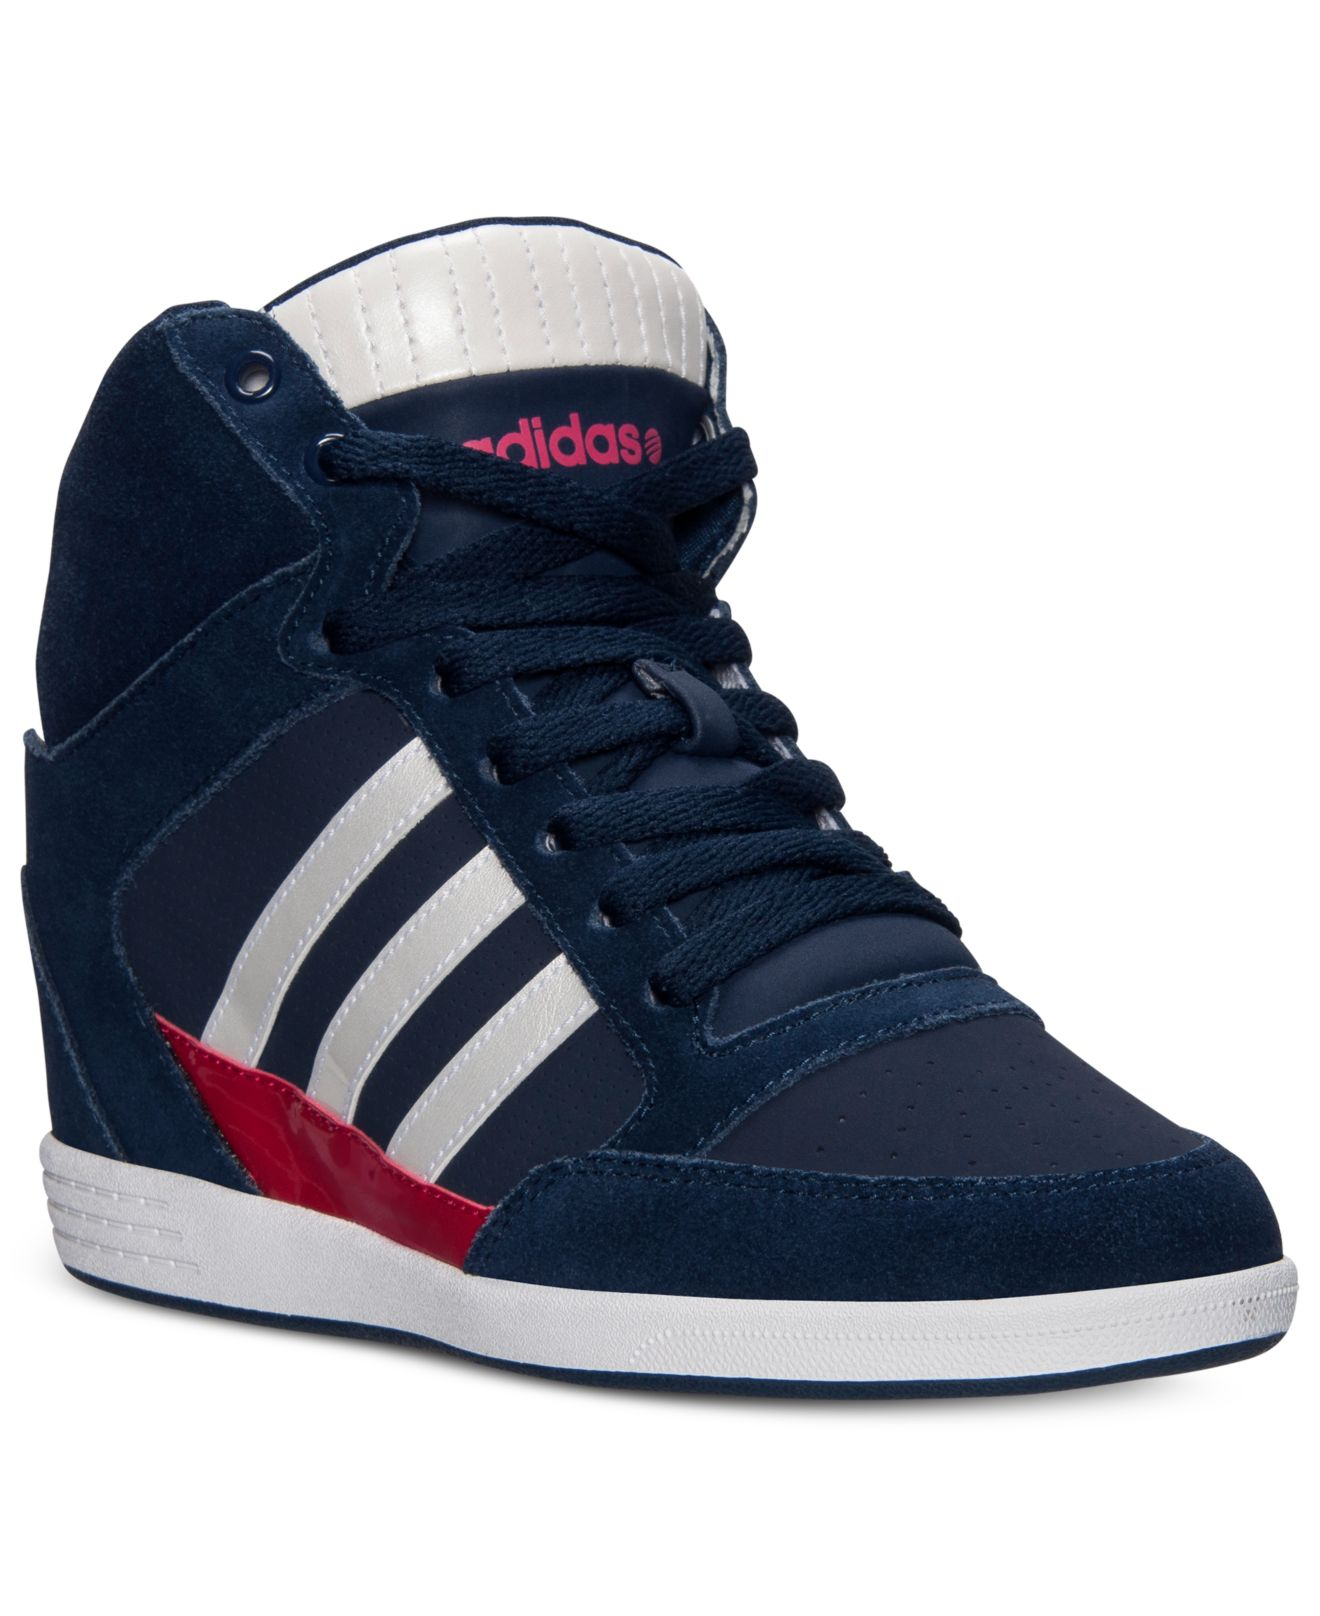 Lyst - adidas Women S Weneo Super Wedge Casual Sneakers From Finish ... b7a1a4170